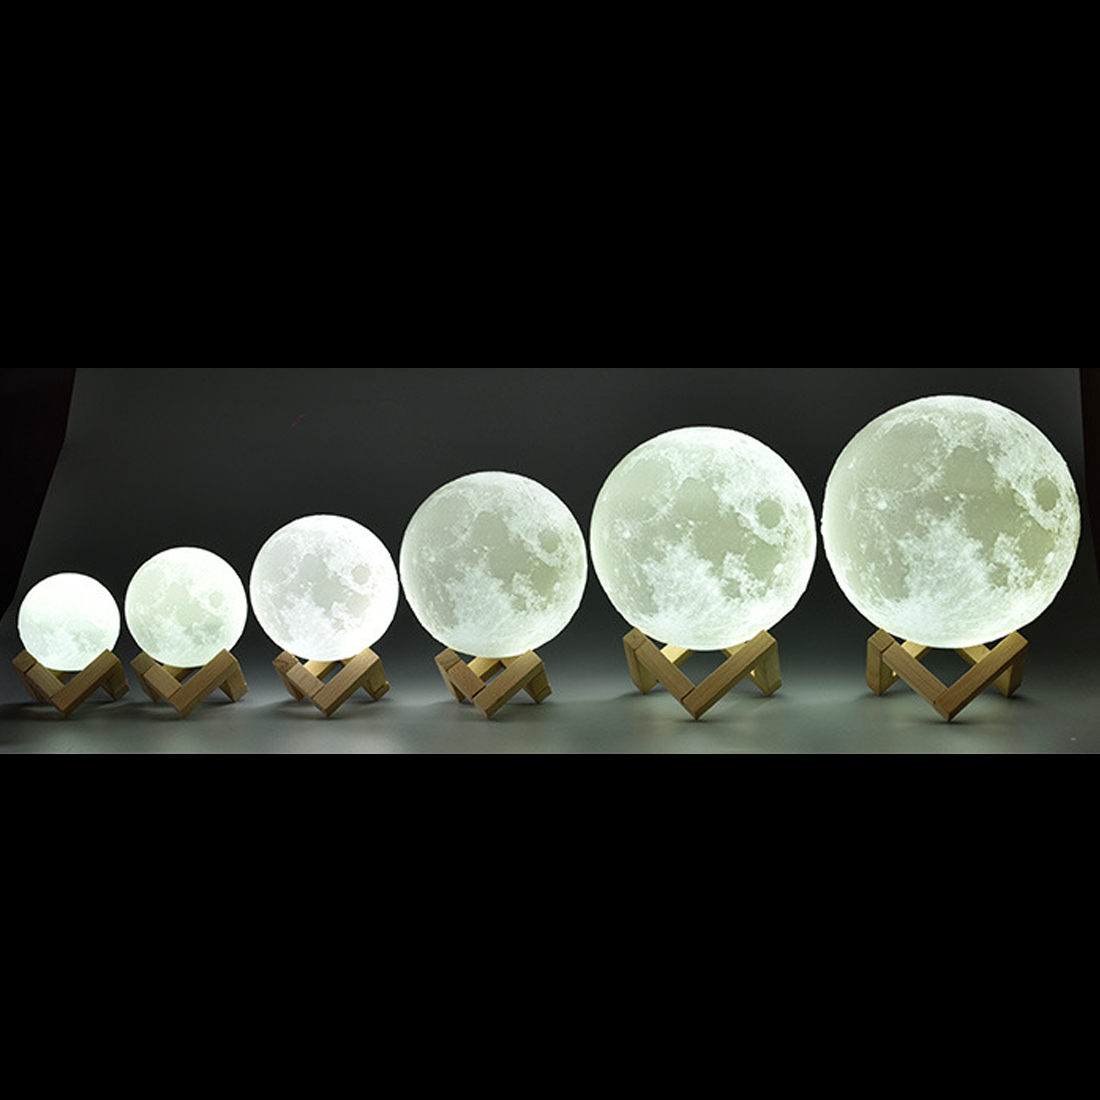 Novelty 3D Printing Moon Light Customized Personality Lunar USB Charging Night Lamp Touch Control Dim Brightness